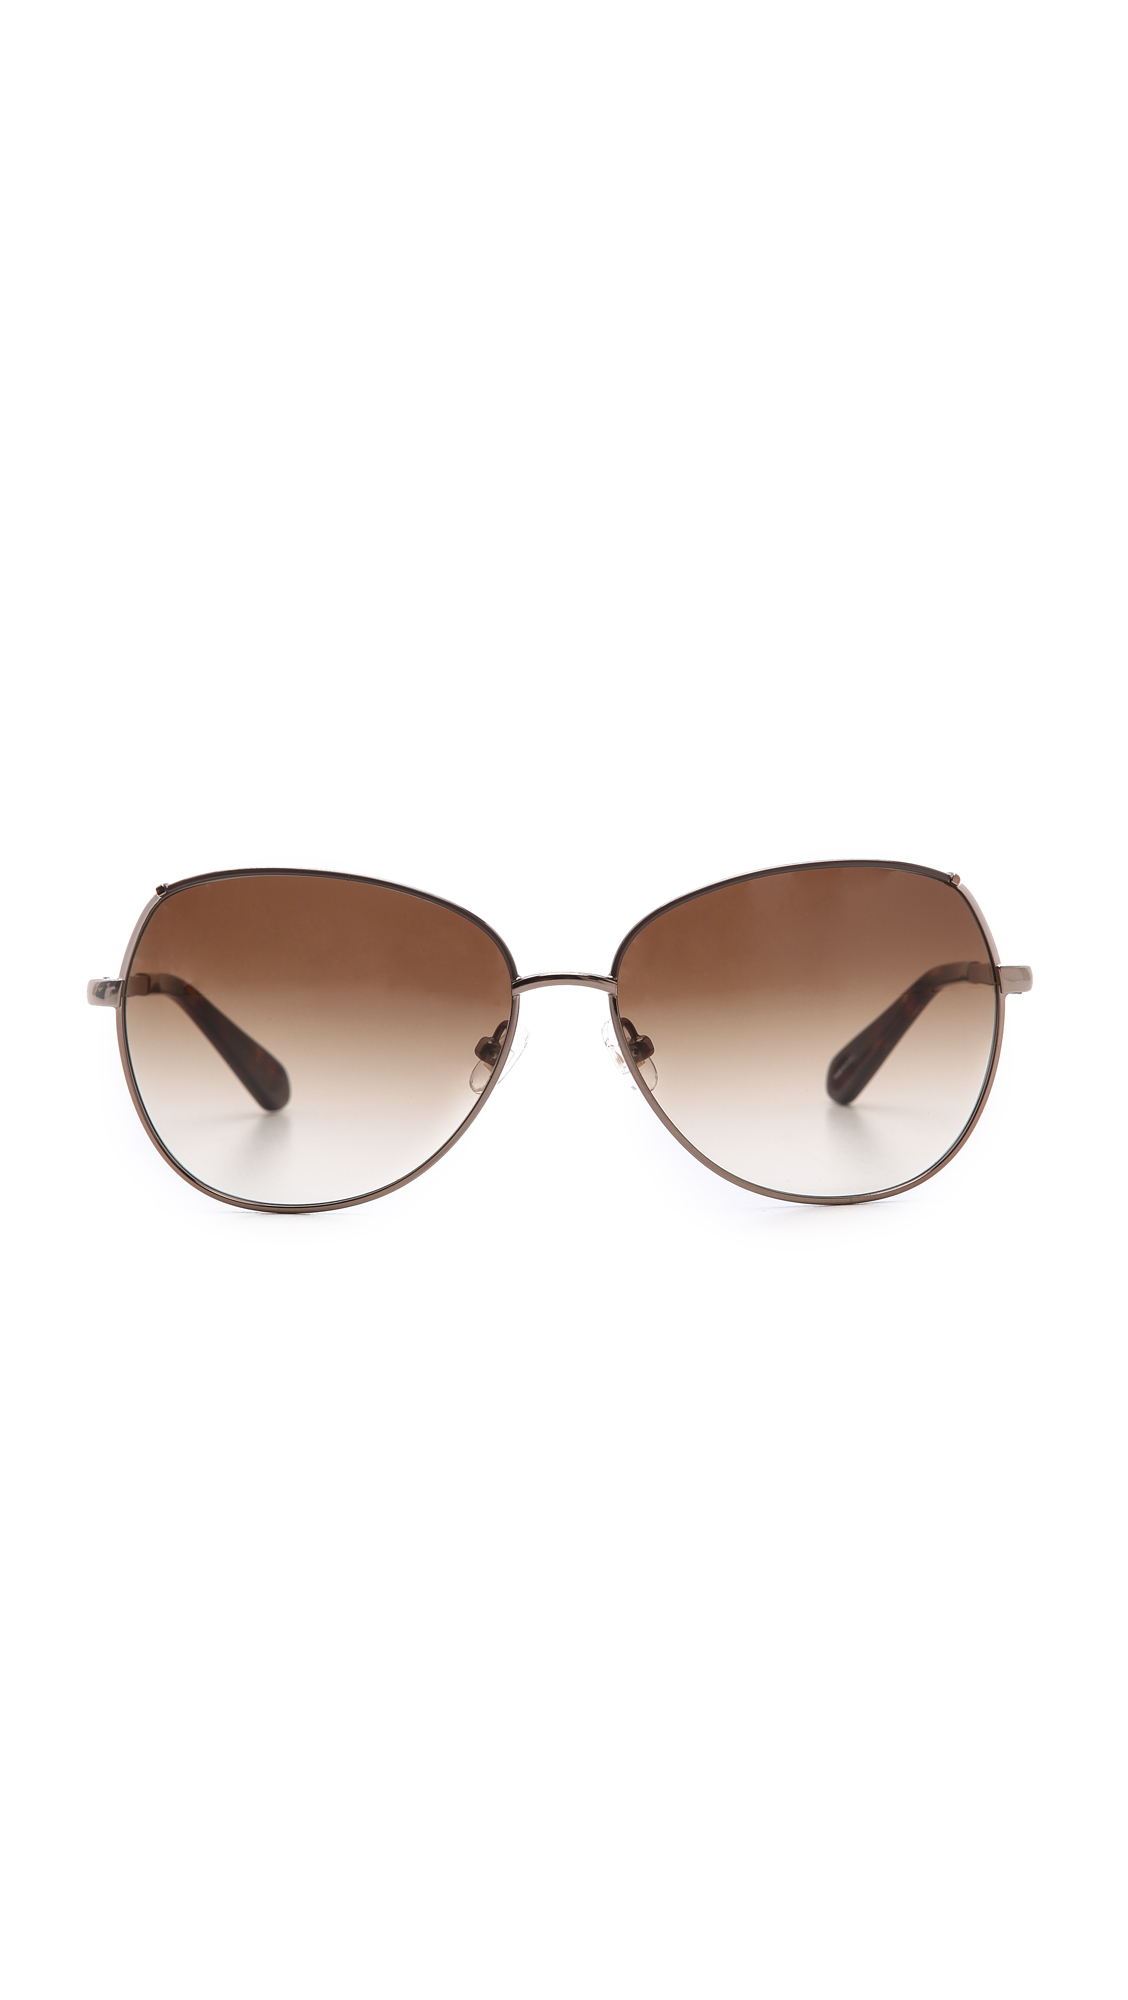 Kate Spade Candida Sunglasses in Almond Brown Cream/Brown (Brown)